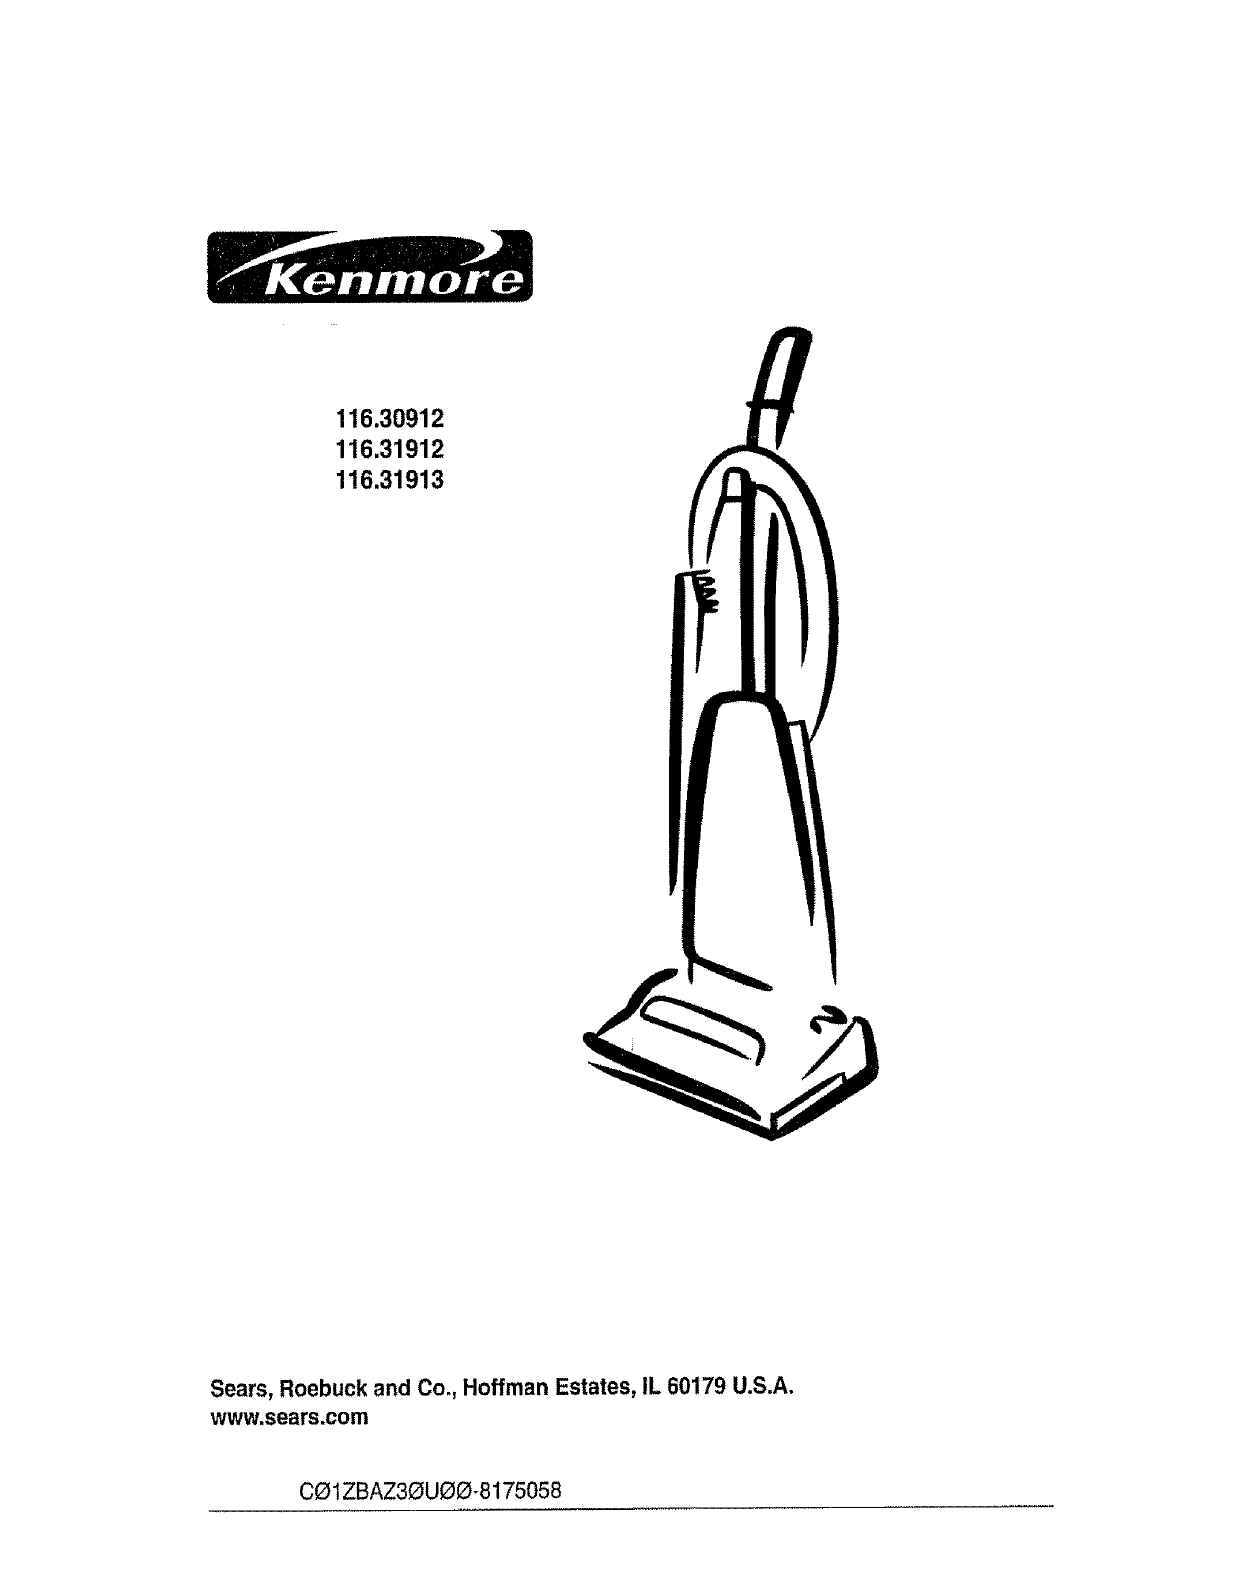 Kenmore Vacuum Cleaner 116.30912 User Guide